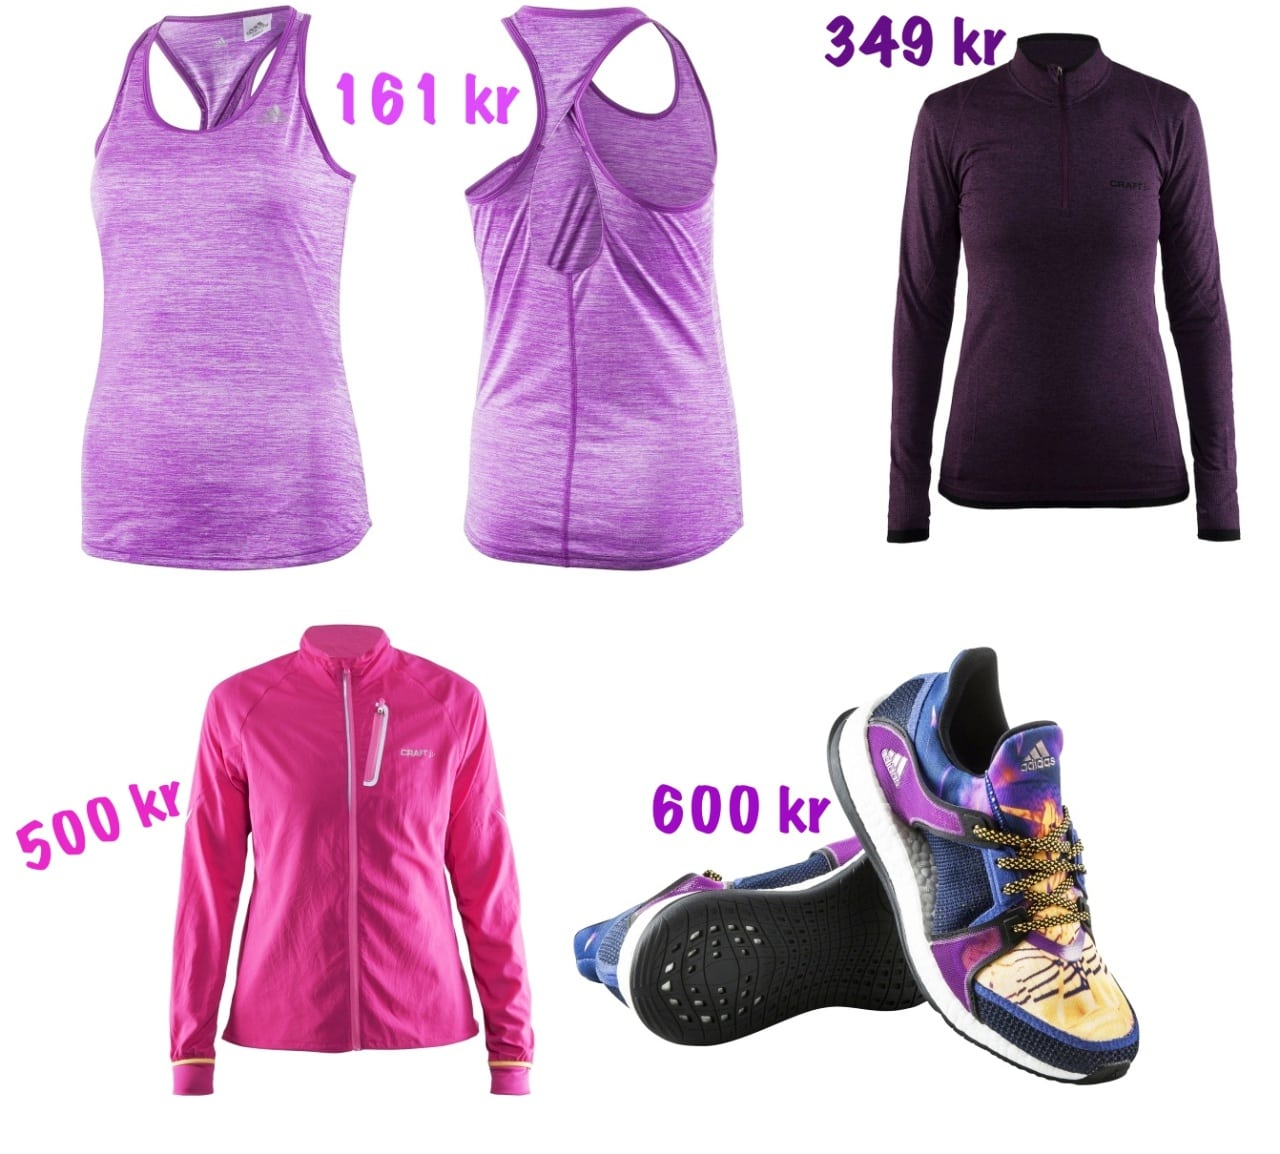 74937_adidas_keyhole_tank_-_shock_purple_1-side-down